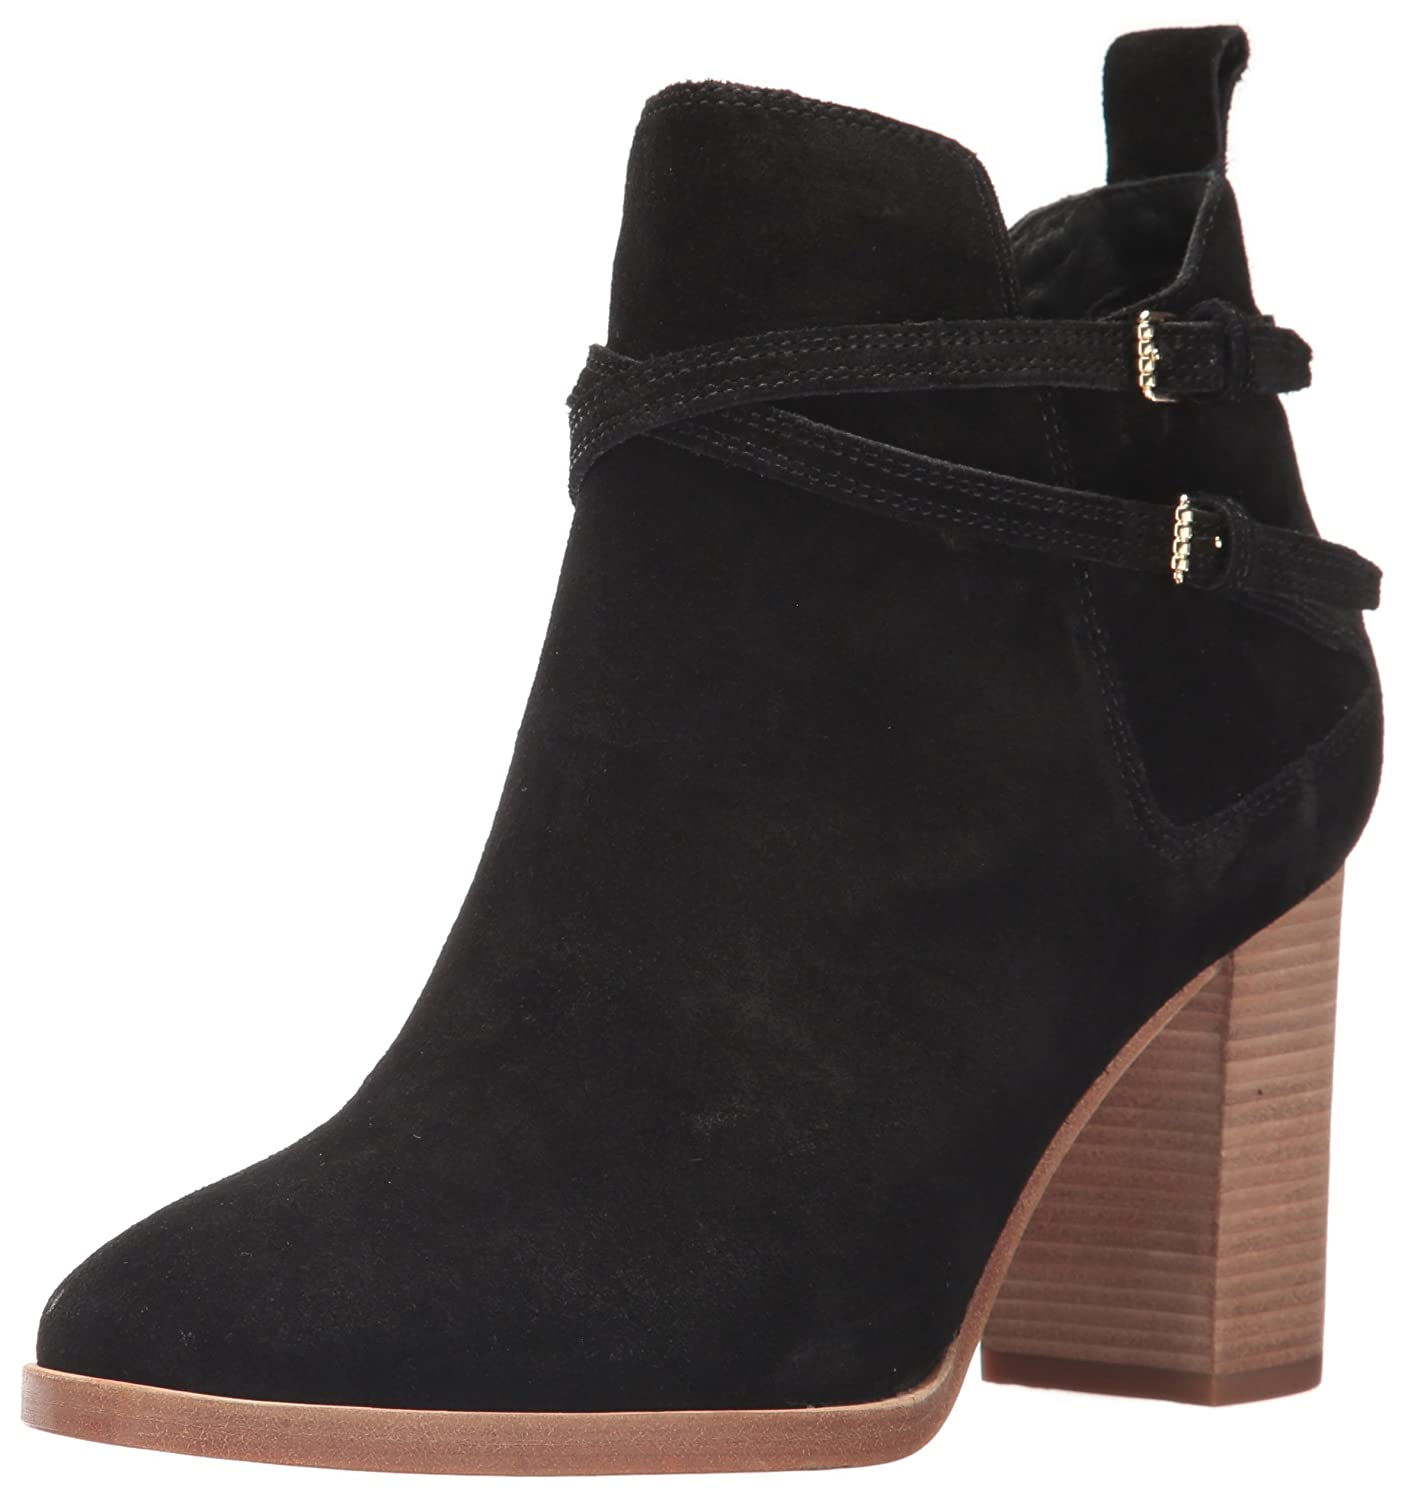 Cole Haan Women's Linnie Bootie Ankle Boot B01N39H6AX 10 M US|Black Suede